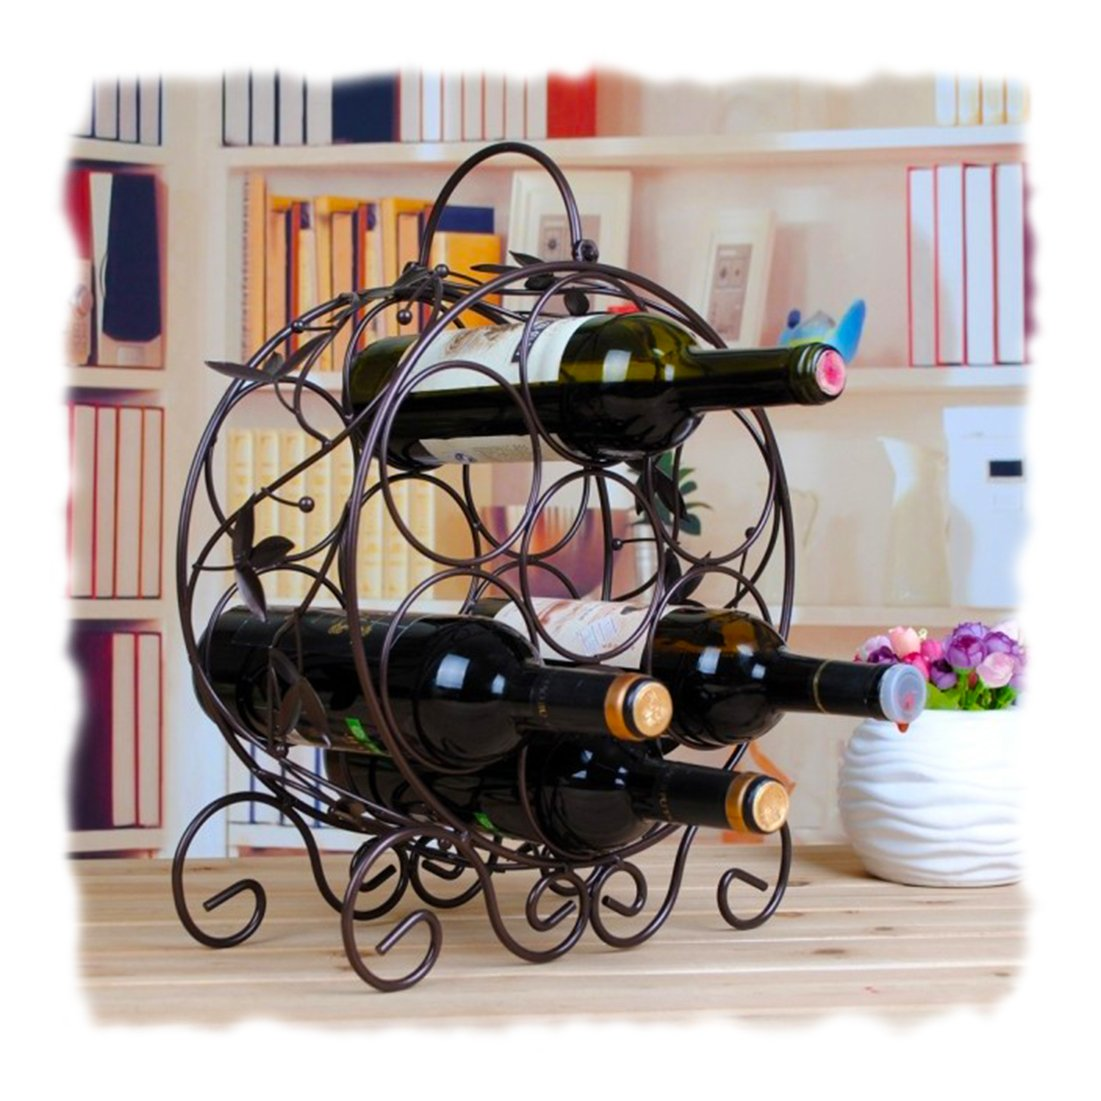 Decorative Metal Wine Racks Cool Kitchen Stuff Decorative Metal Wine Racks For Your Favorite